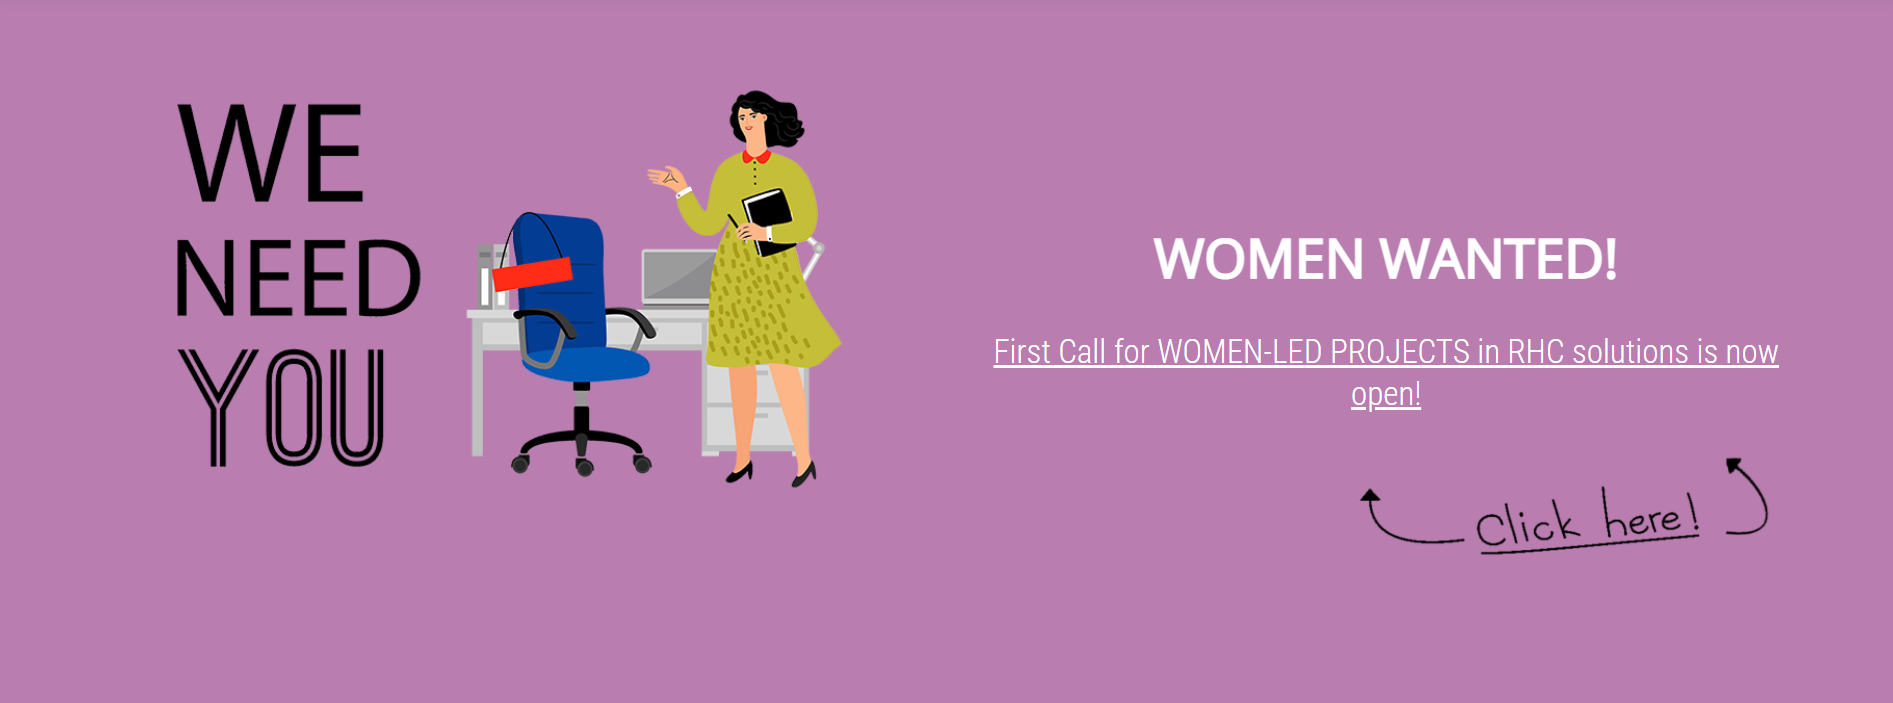 W4RES call for women-led projects!